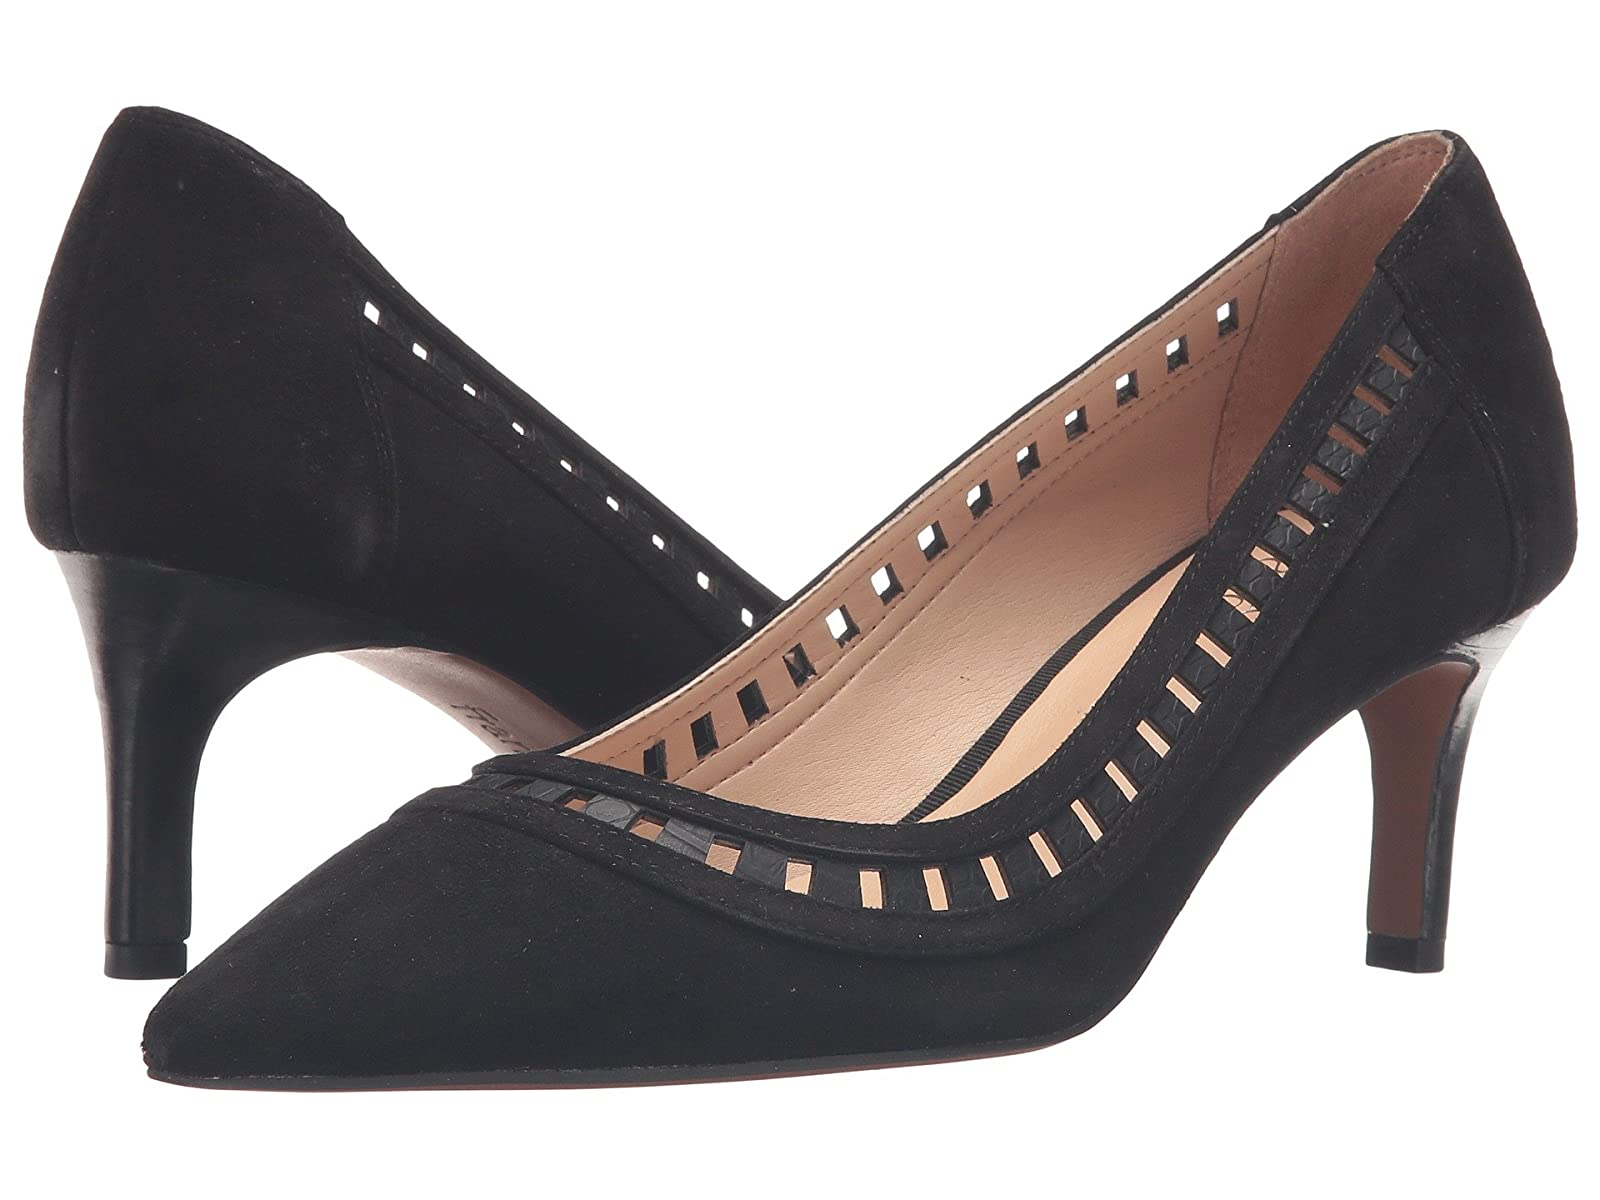 Franco Sarto DianeCheap and distinctive eye-catching shoes